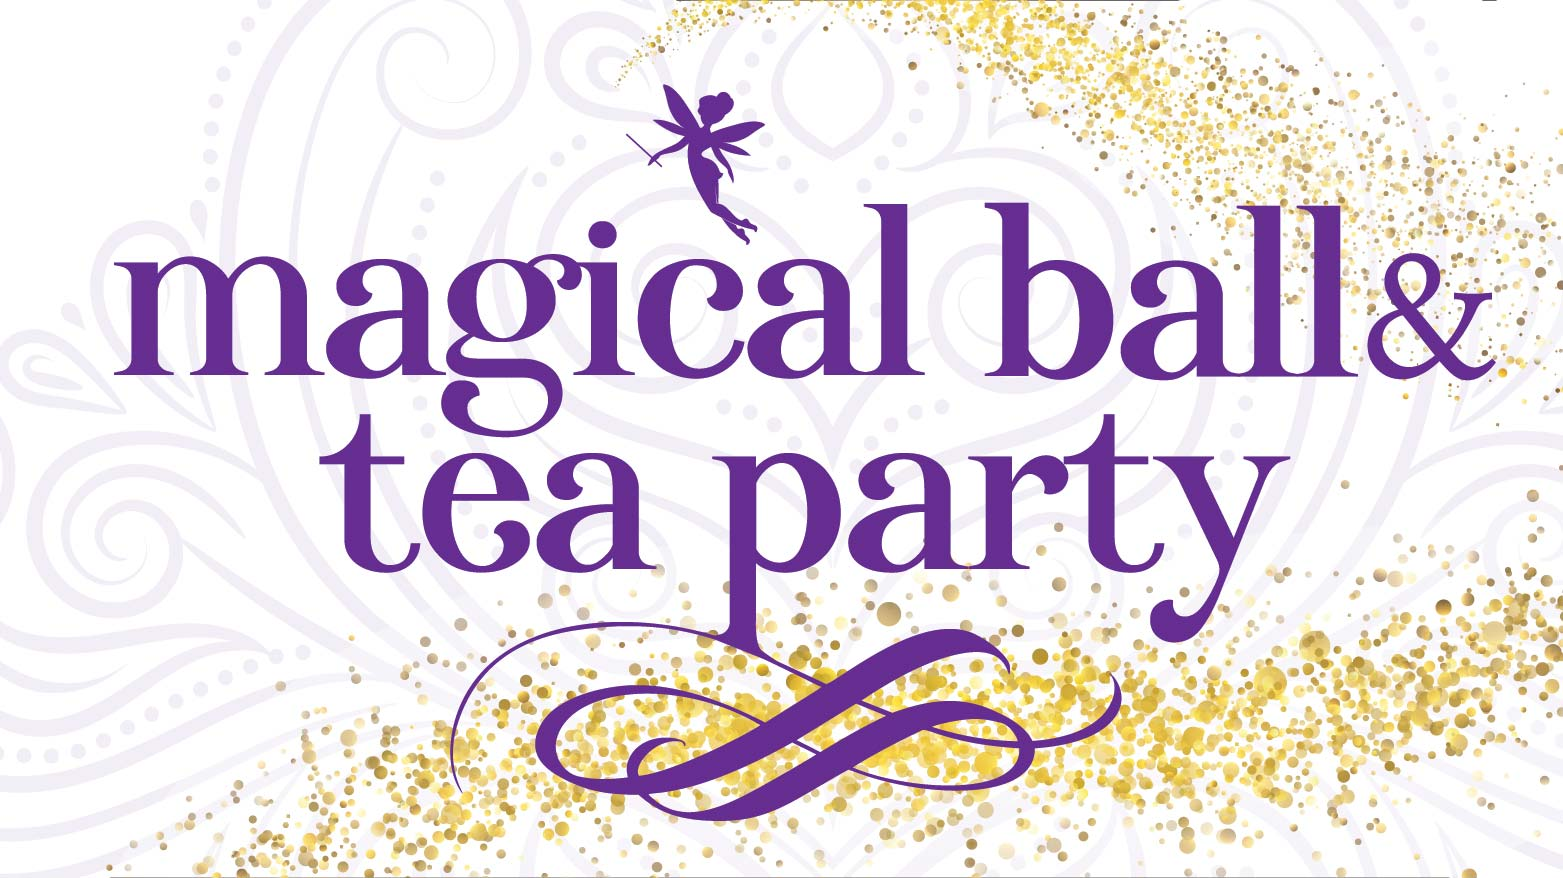 Magical Ball & Tea Party